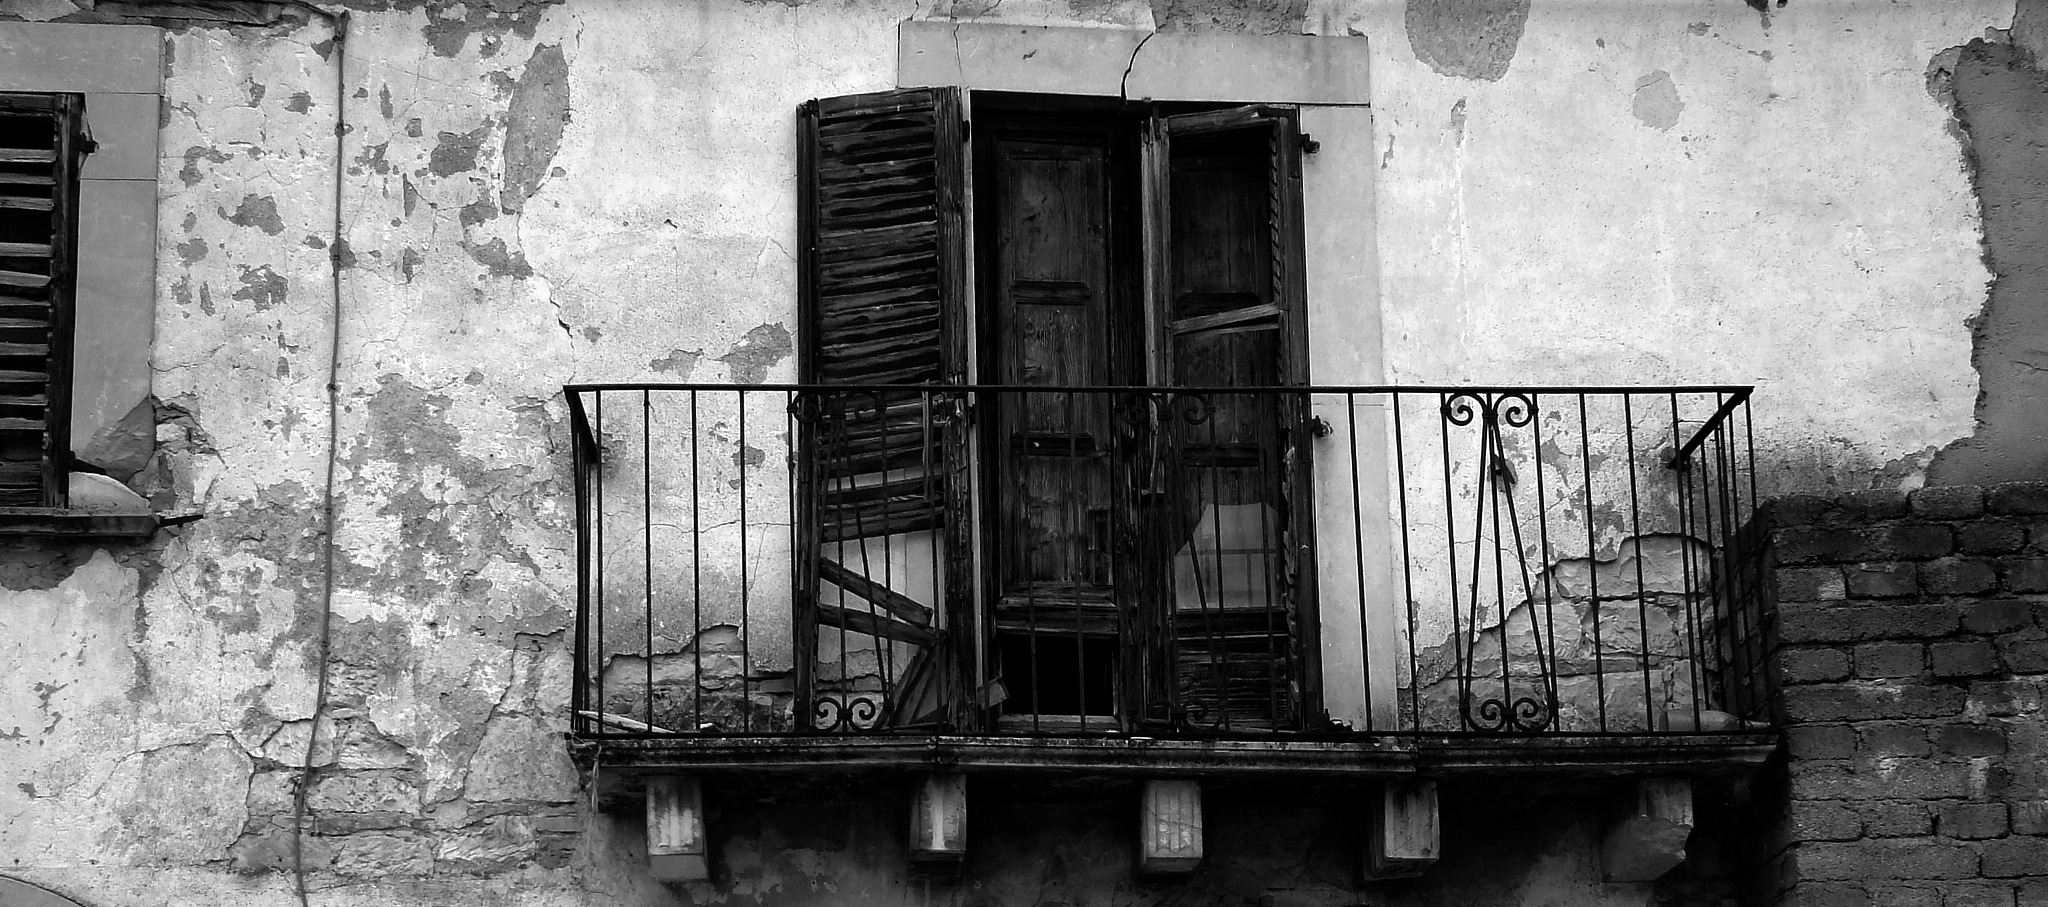 il balcone by Adelaide